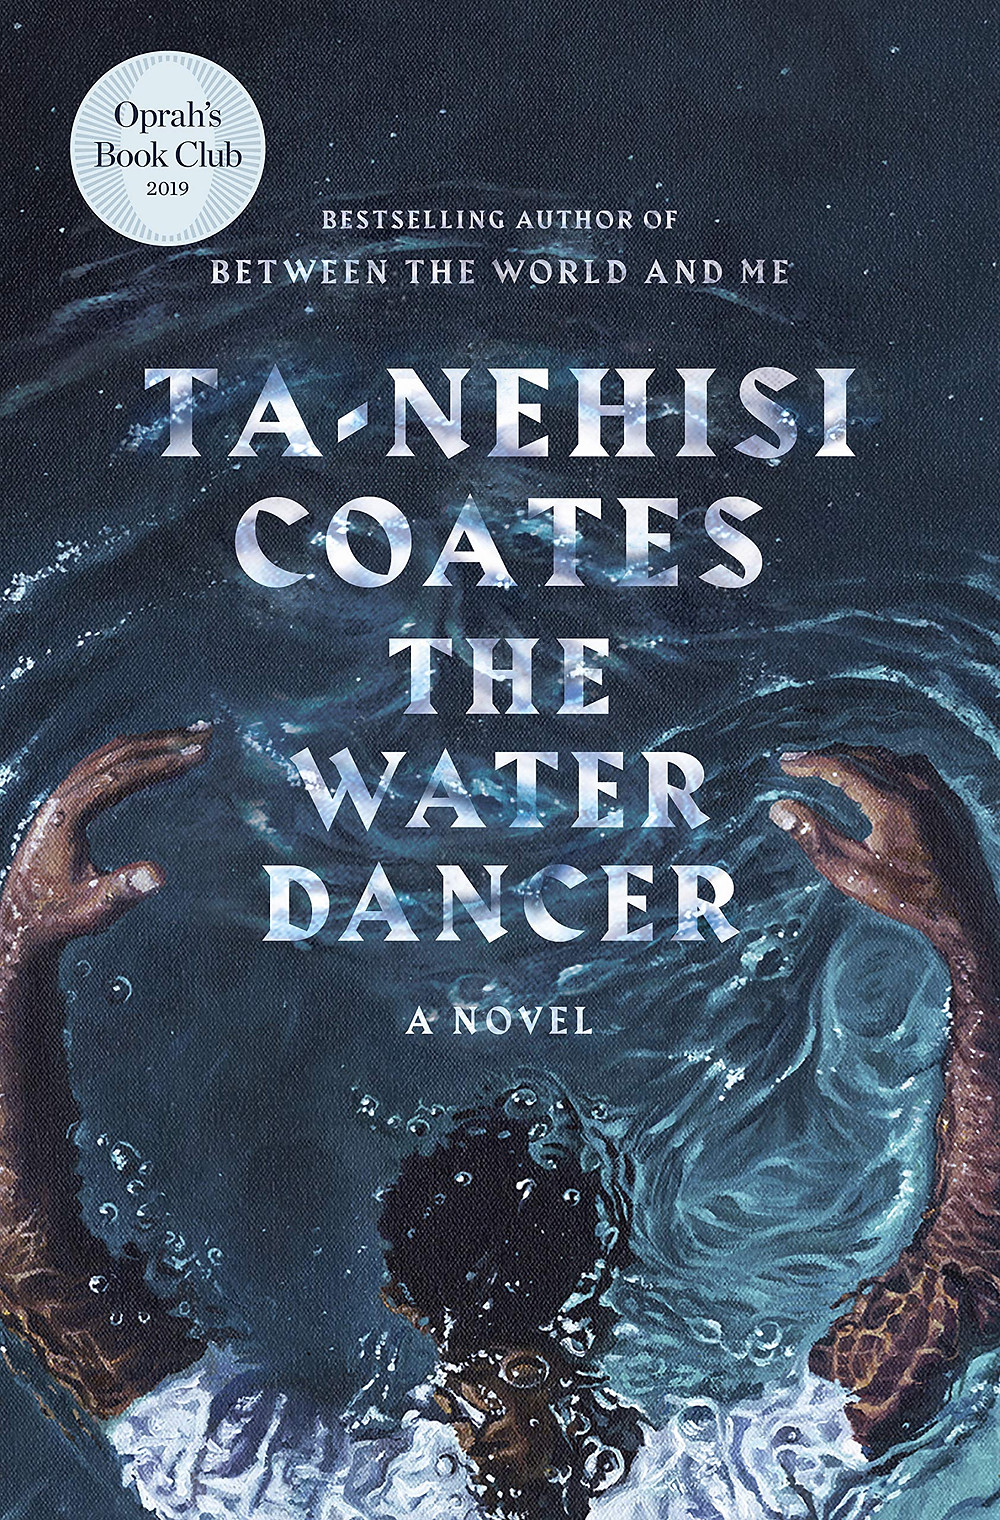 The Water Dancer by Ta-Nehesi Coates